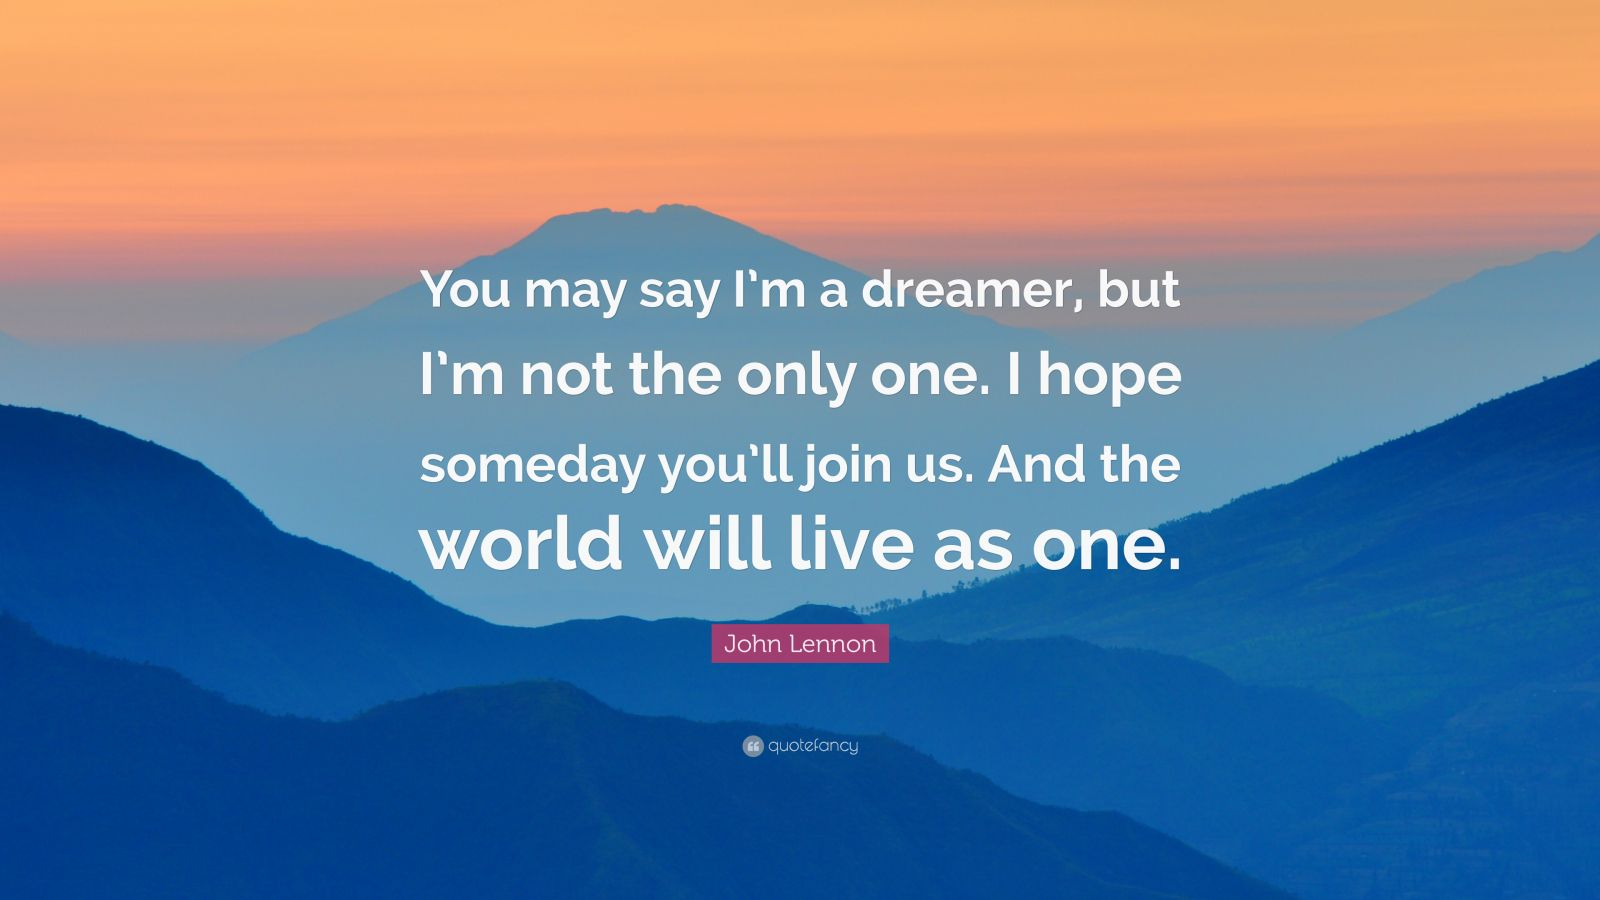 Nietzsche Quotes Wallpaper John Lennon Quote You May Say I M A Dreamer But I M Not